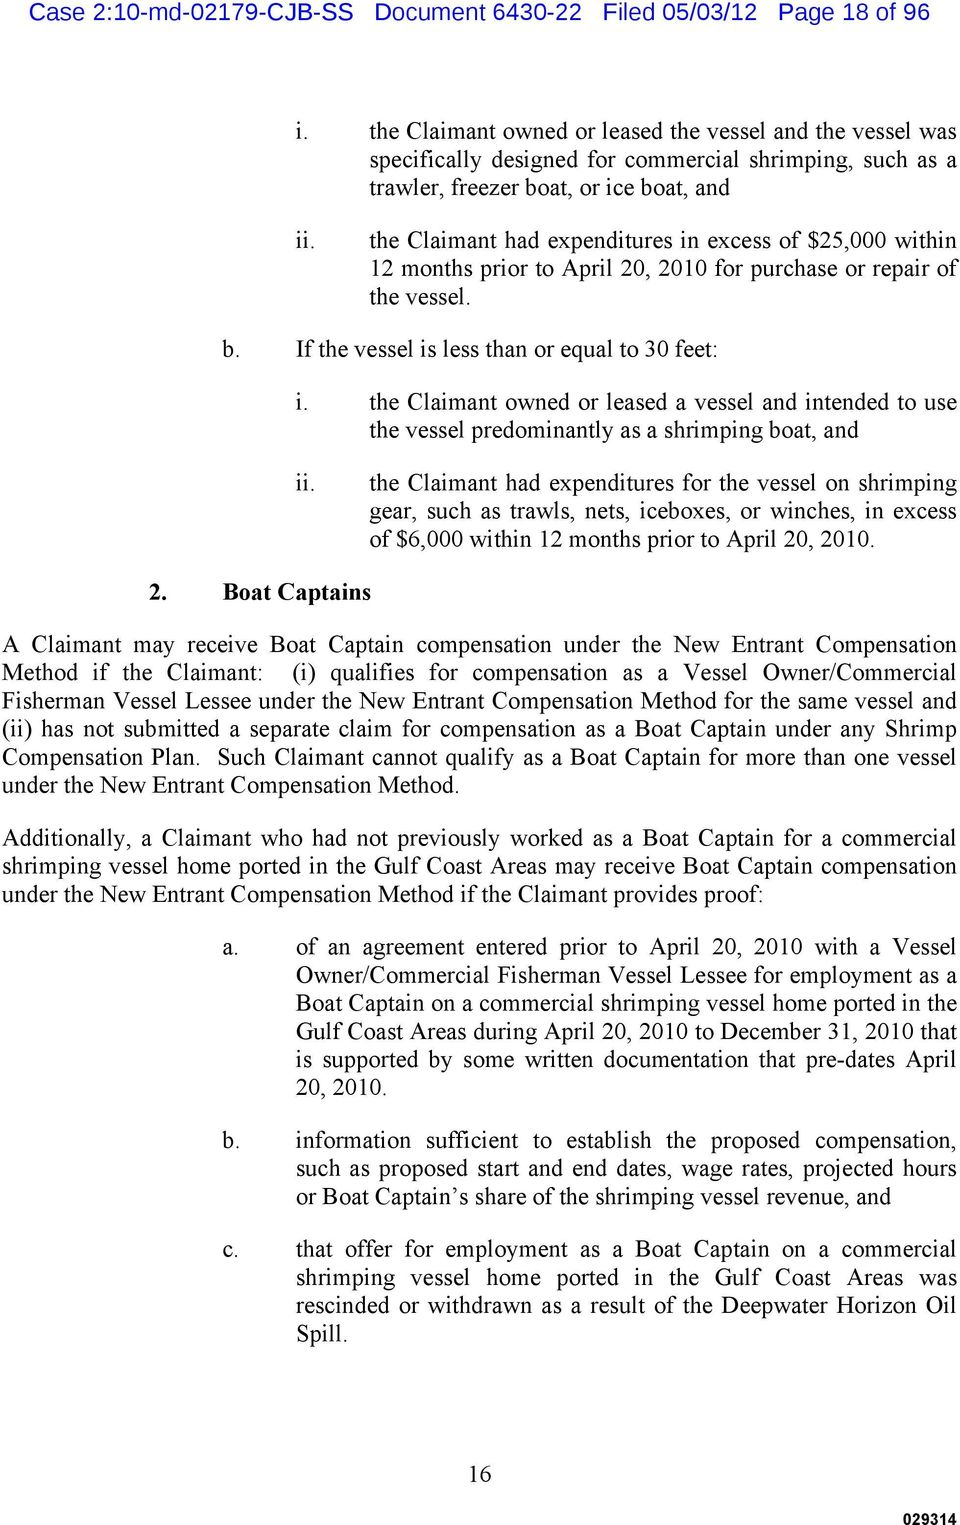 the Claimant had expenditures in excess of $25,000 within 12 months prior to April 20, 2010 for purchase or repair of the vessel. b. If the vessel is less than or equal to 30 feet: i.